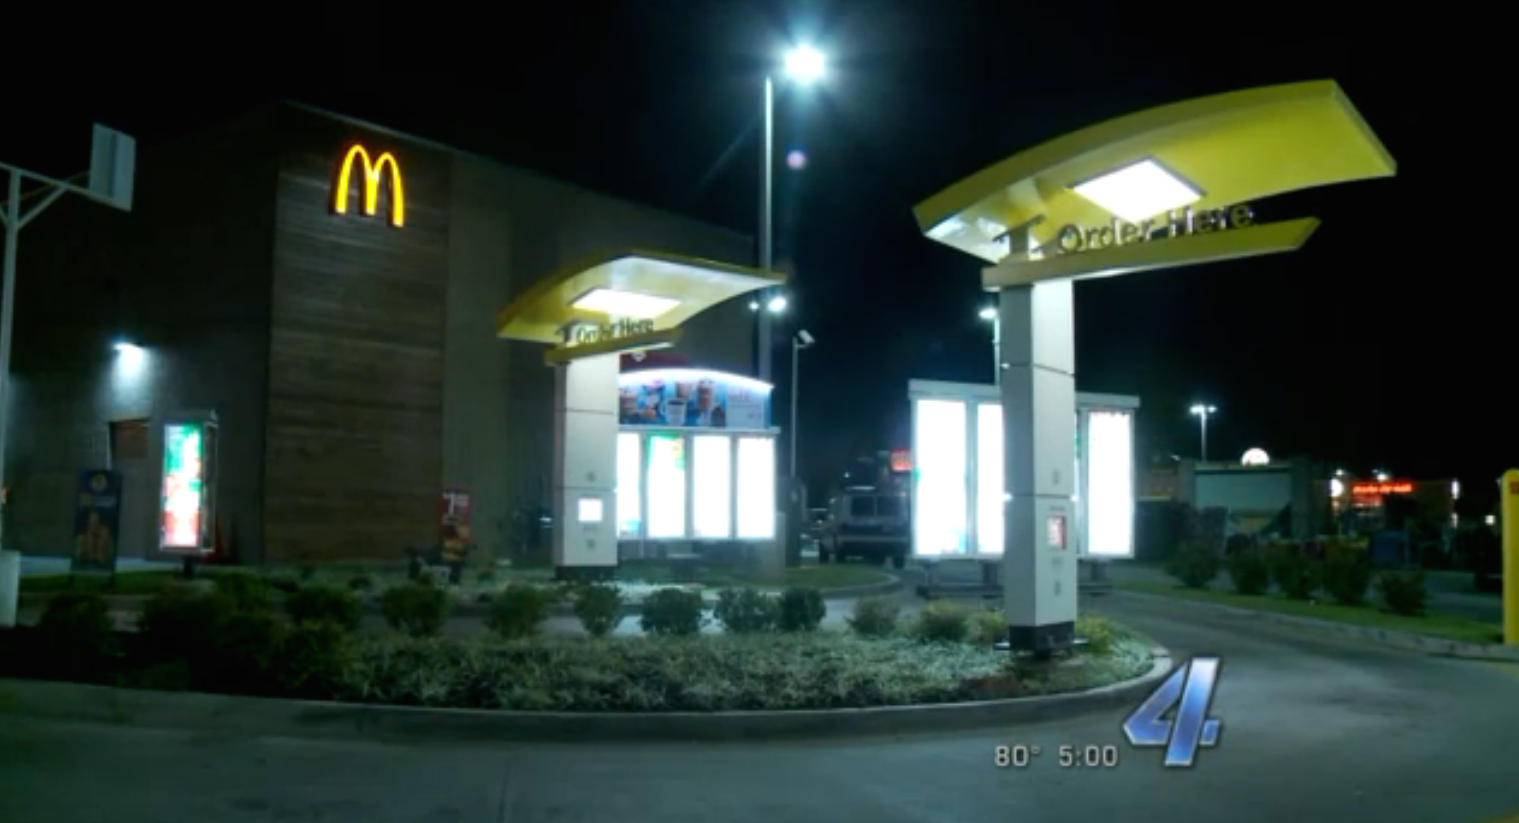 McDonald's Won't Serve Pedestrian At Drive-Thru, So He Steals Customer's Car